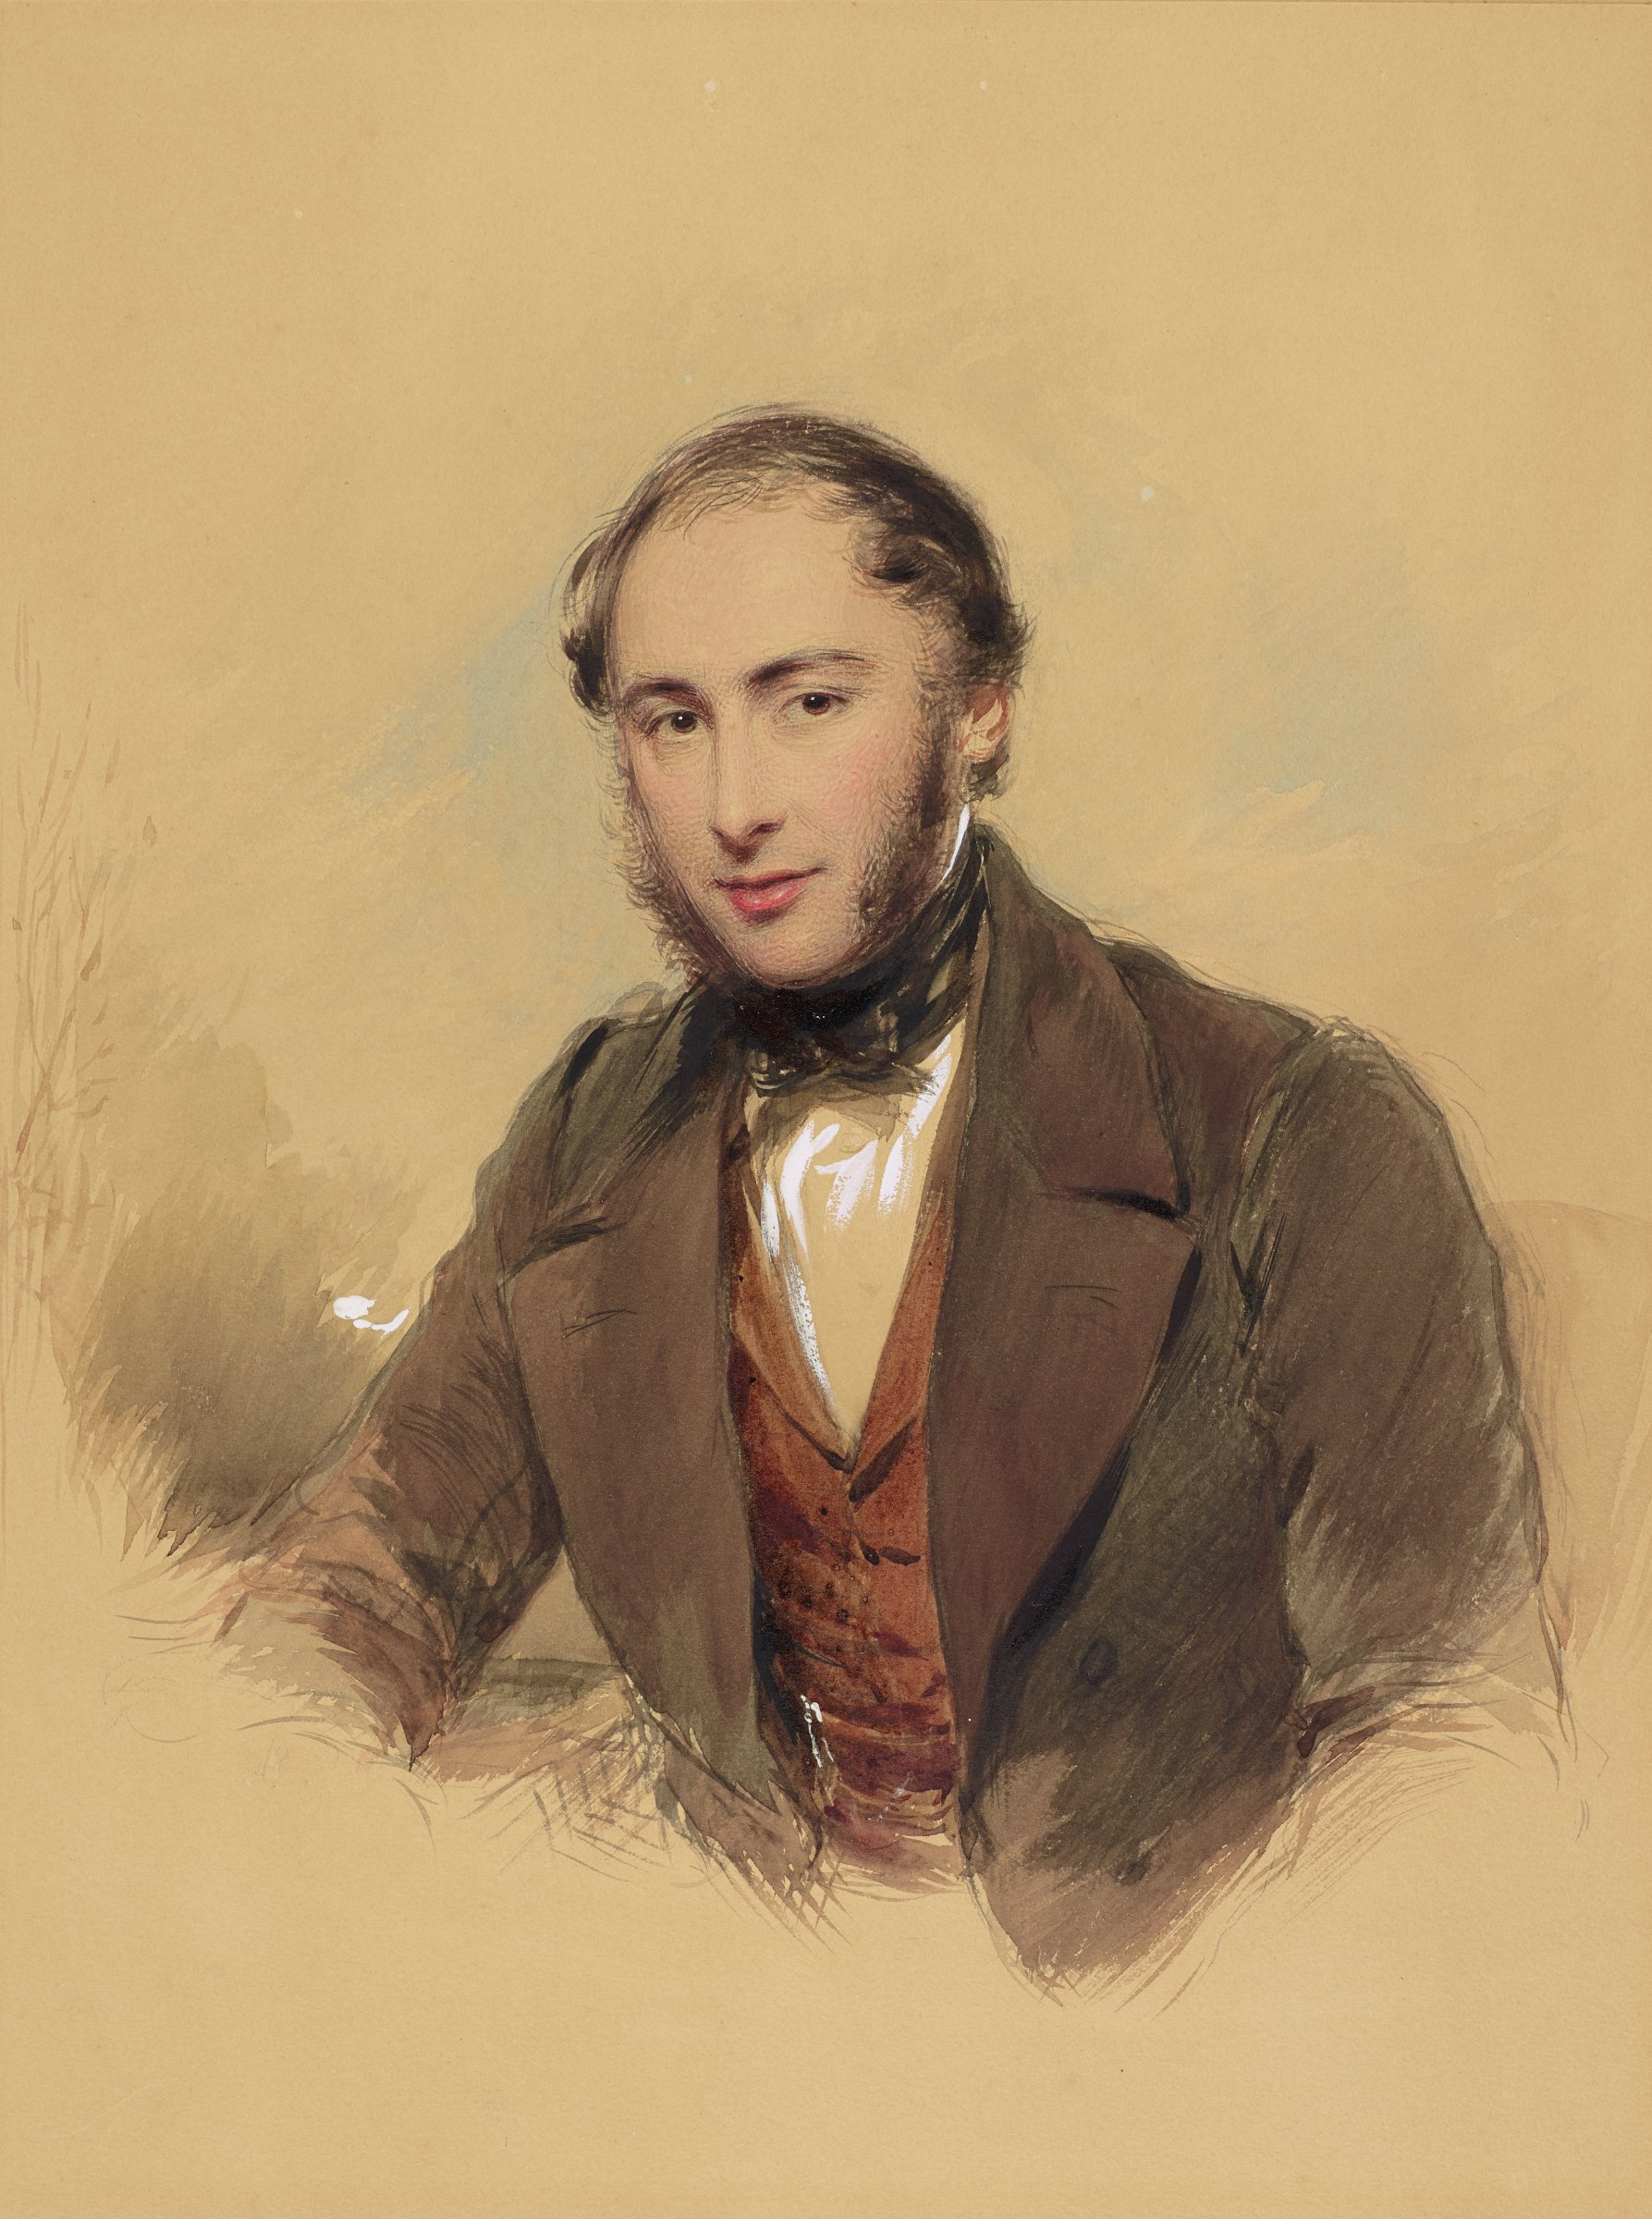 Portrait of a male figure, half-length, dressed in a brown jacket with a red vest and bow tie looking out at the viewer.